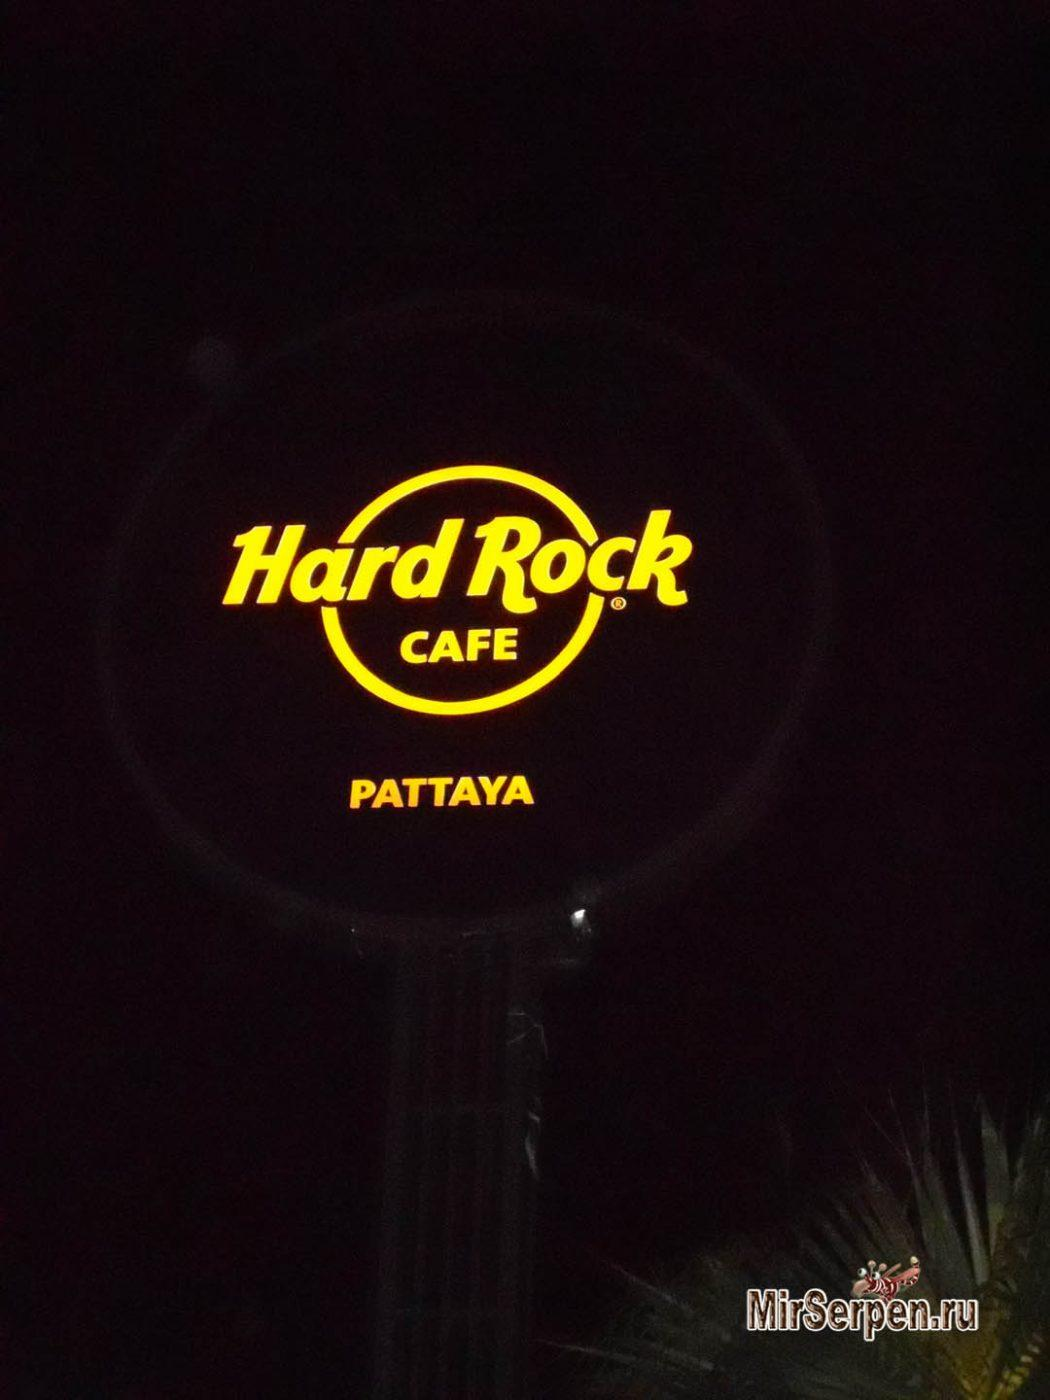 Hard Rock Cafe в отеле Hard Rock Hotel Pattaya 4*, Паттайя, Таиланд